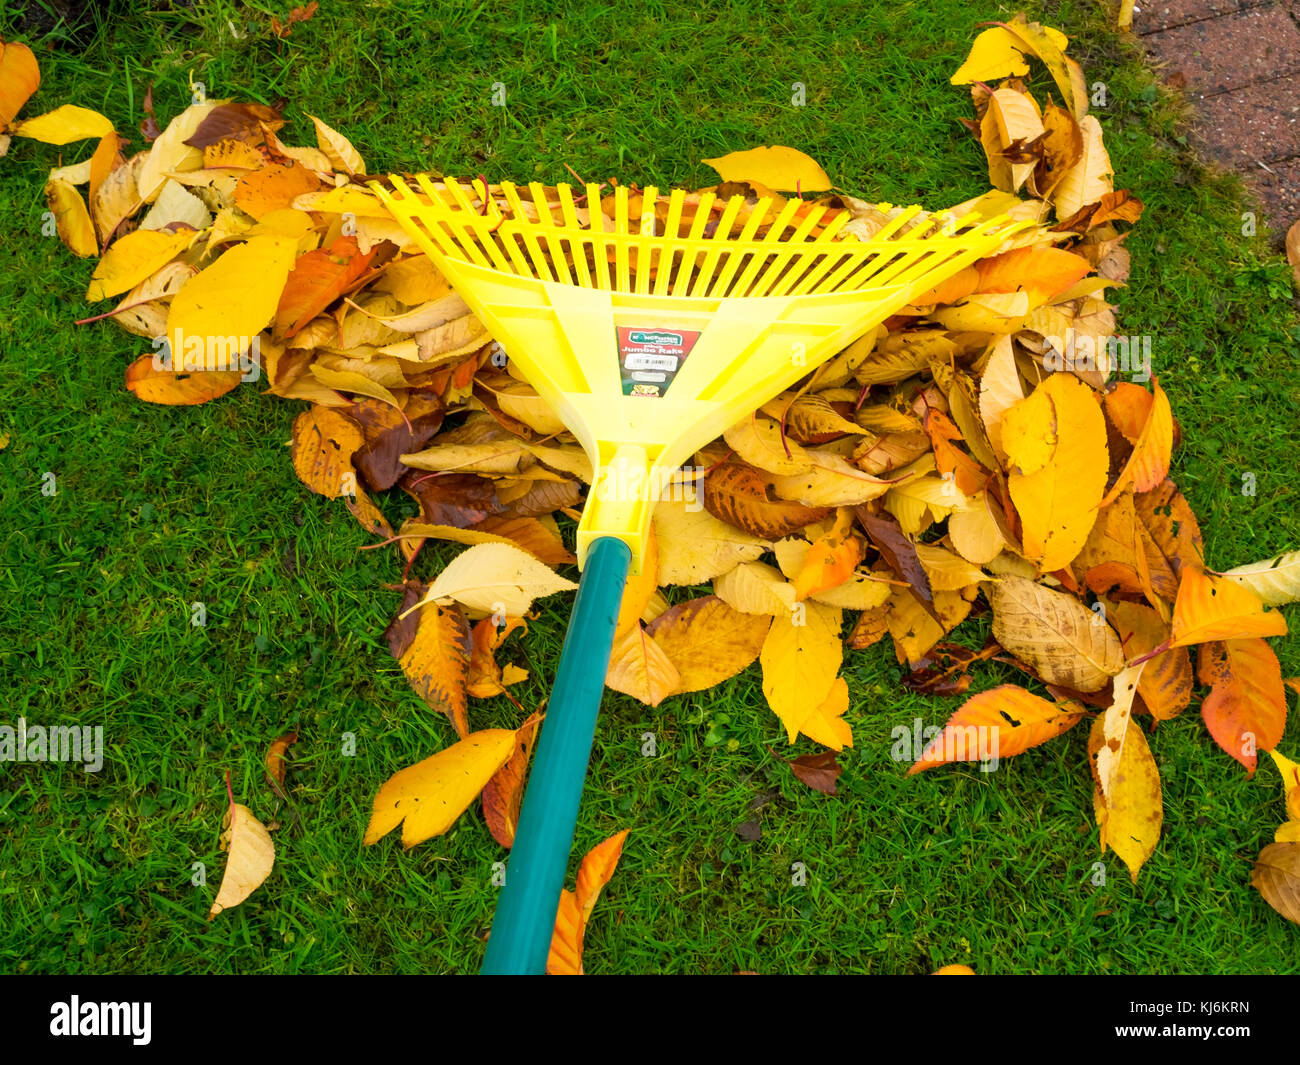 Autumn chore for gardeners, raking up falling leaves, which can be bagged forming leaf mould a useful garden fertiliZer - Stock Image